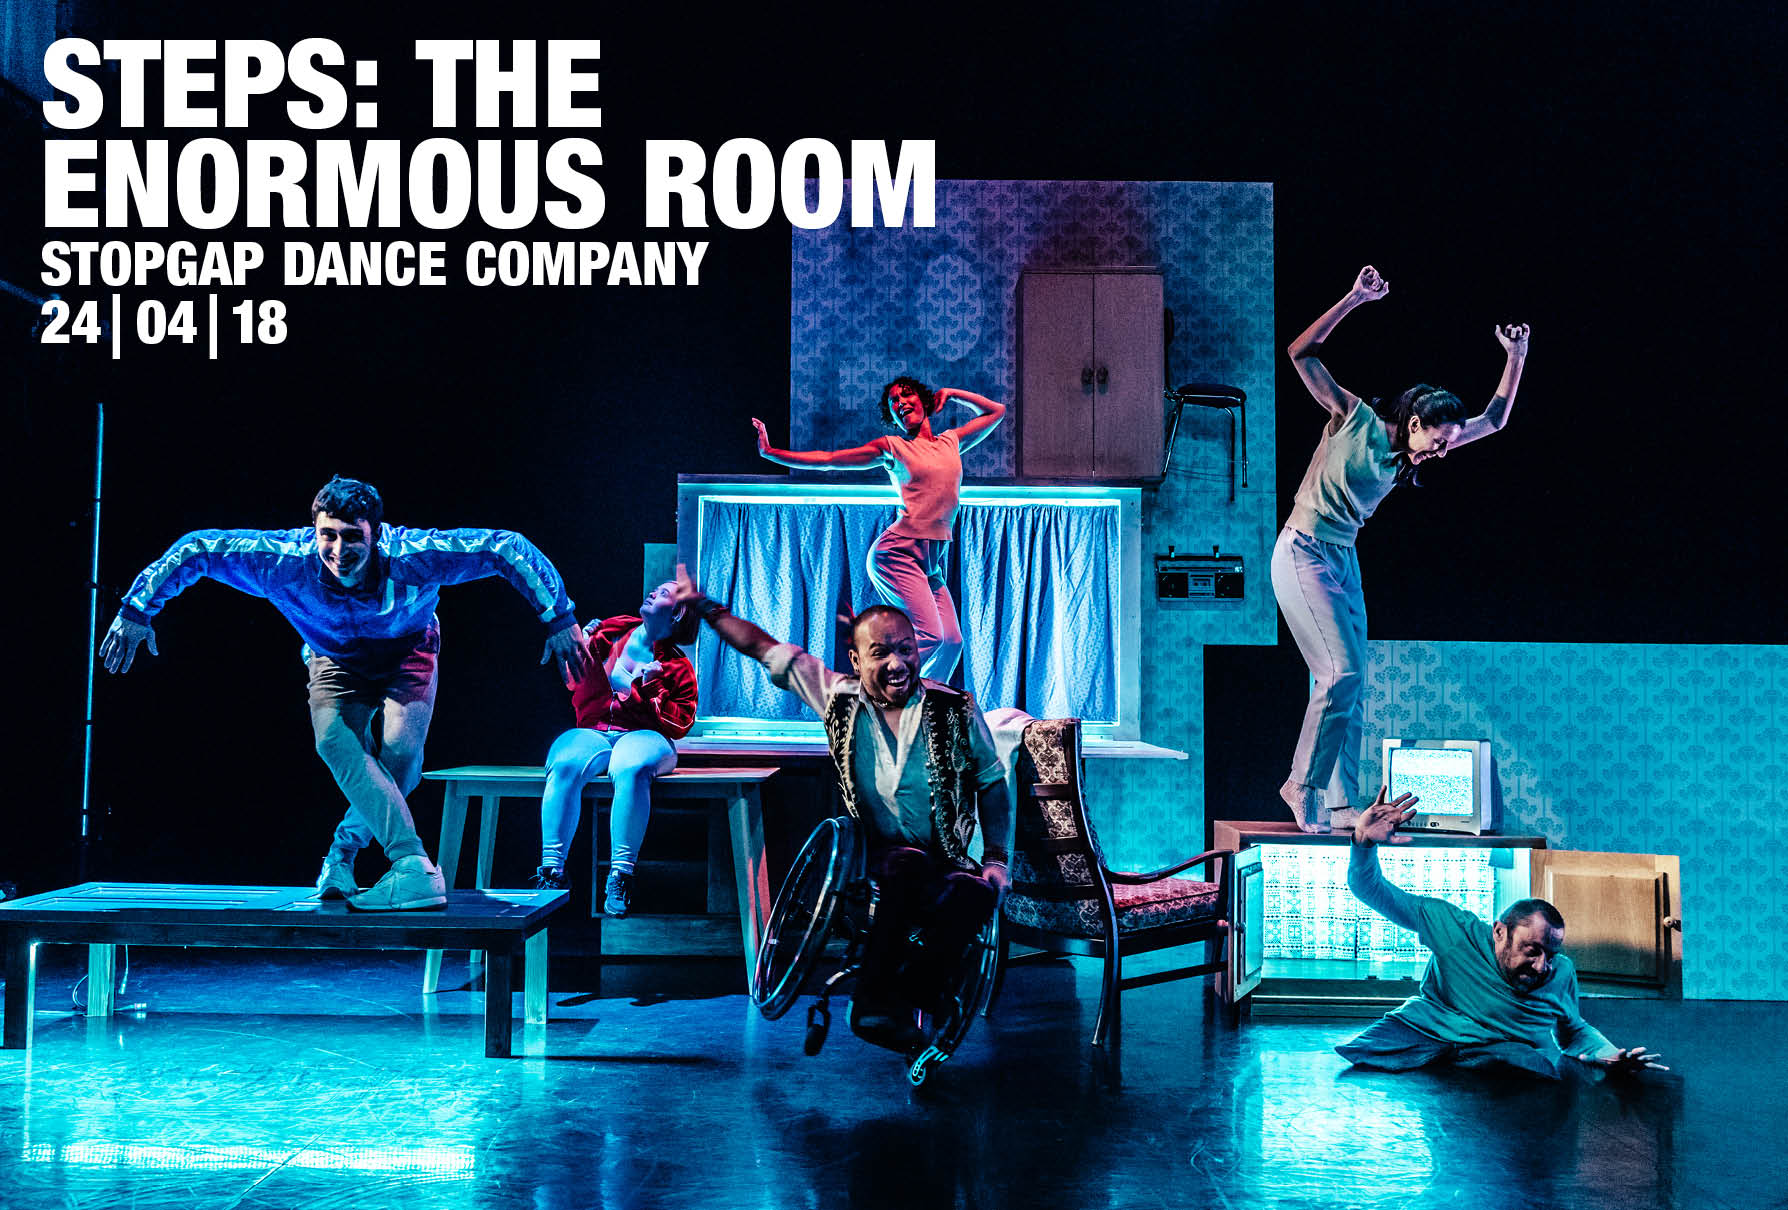 STEPS: The enormous room